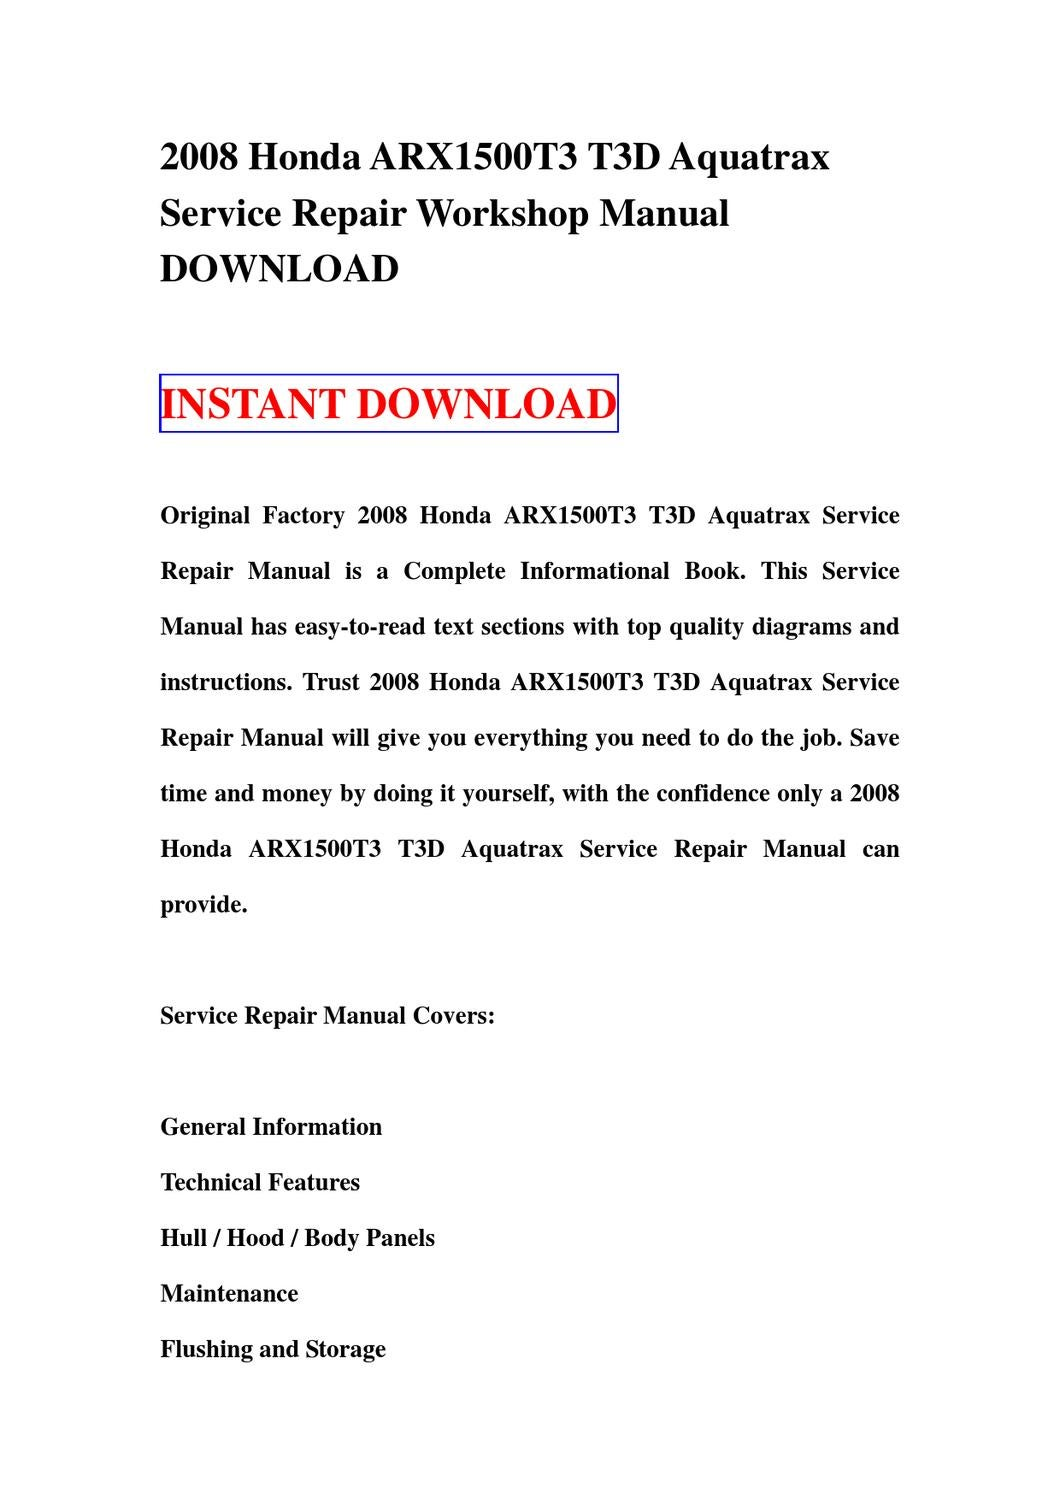 Honda Xr400r Workshop Manual Pdf Wiring Diagram For 7a4863 1997 Service Repair